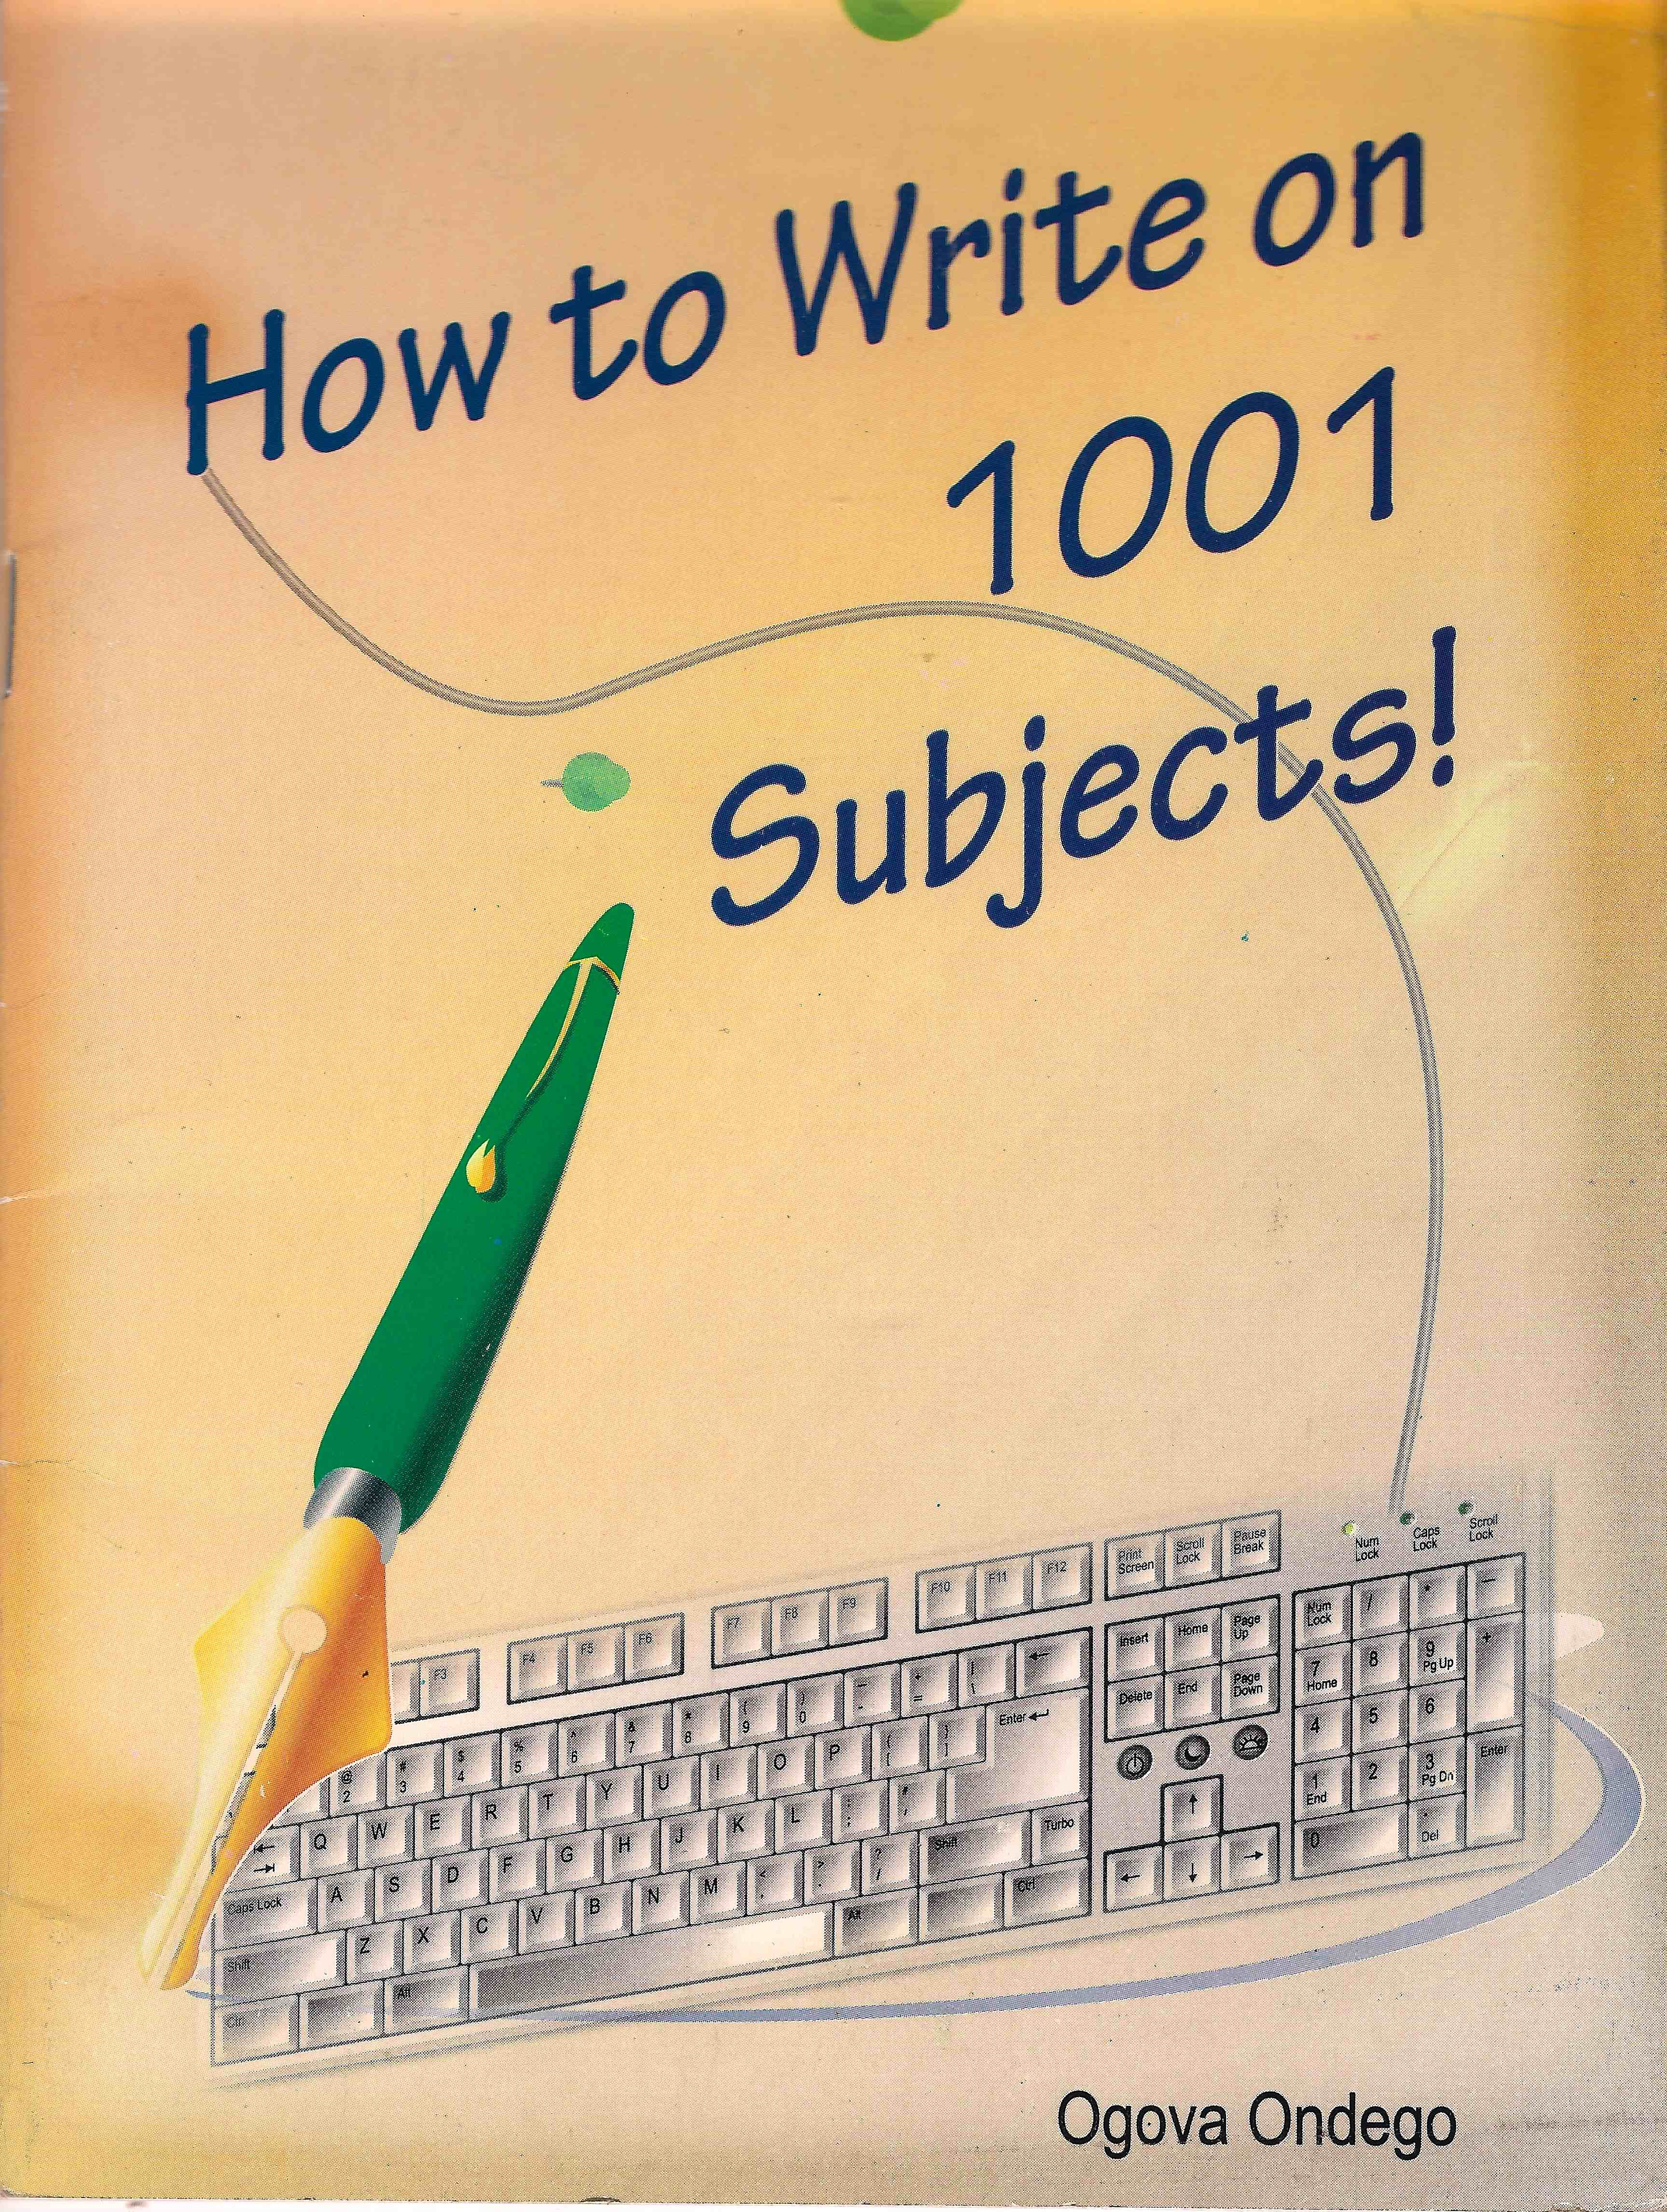 How to Write on 1001 Subjects